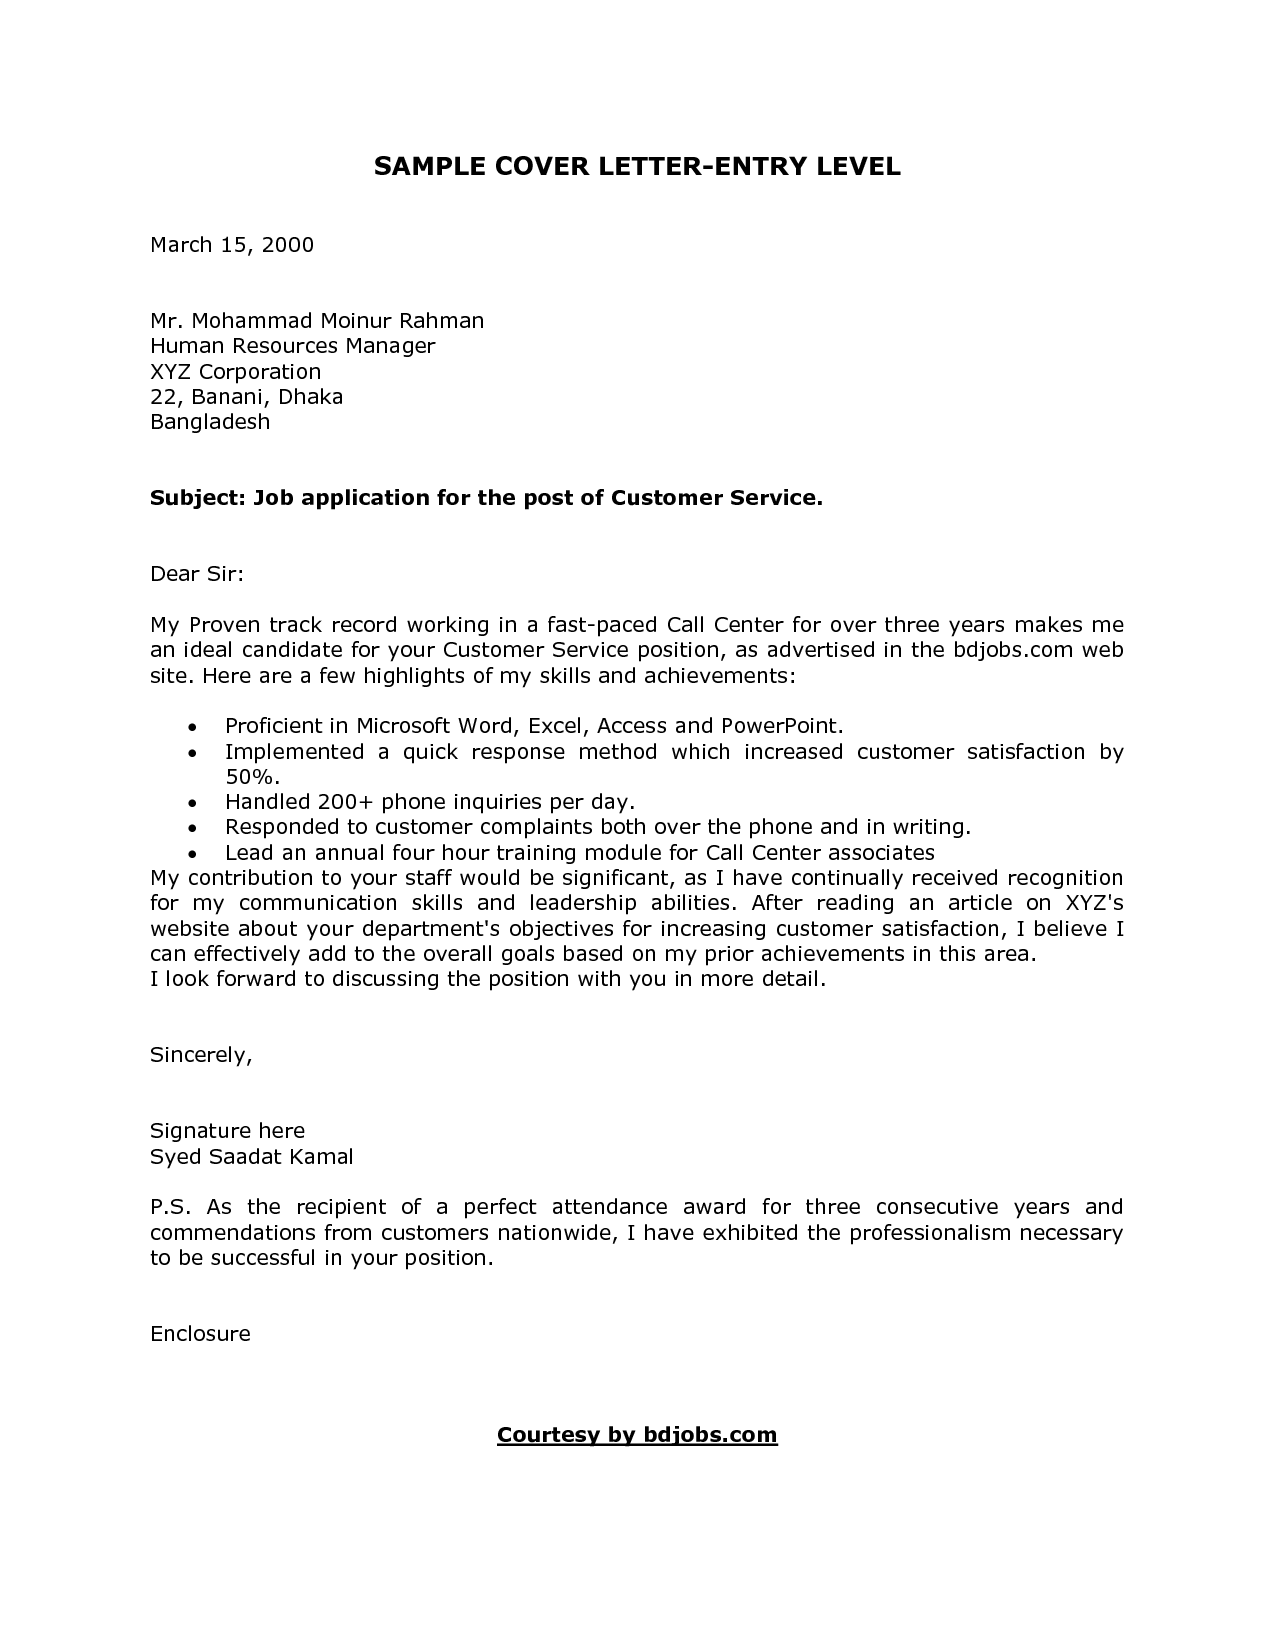 A Good Cover Letter Cover Letter Pinterest Resume Sample